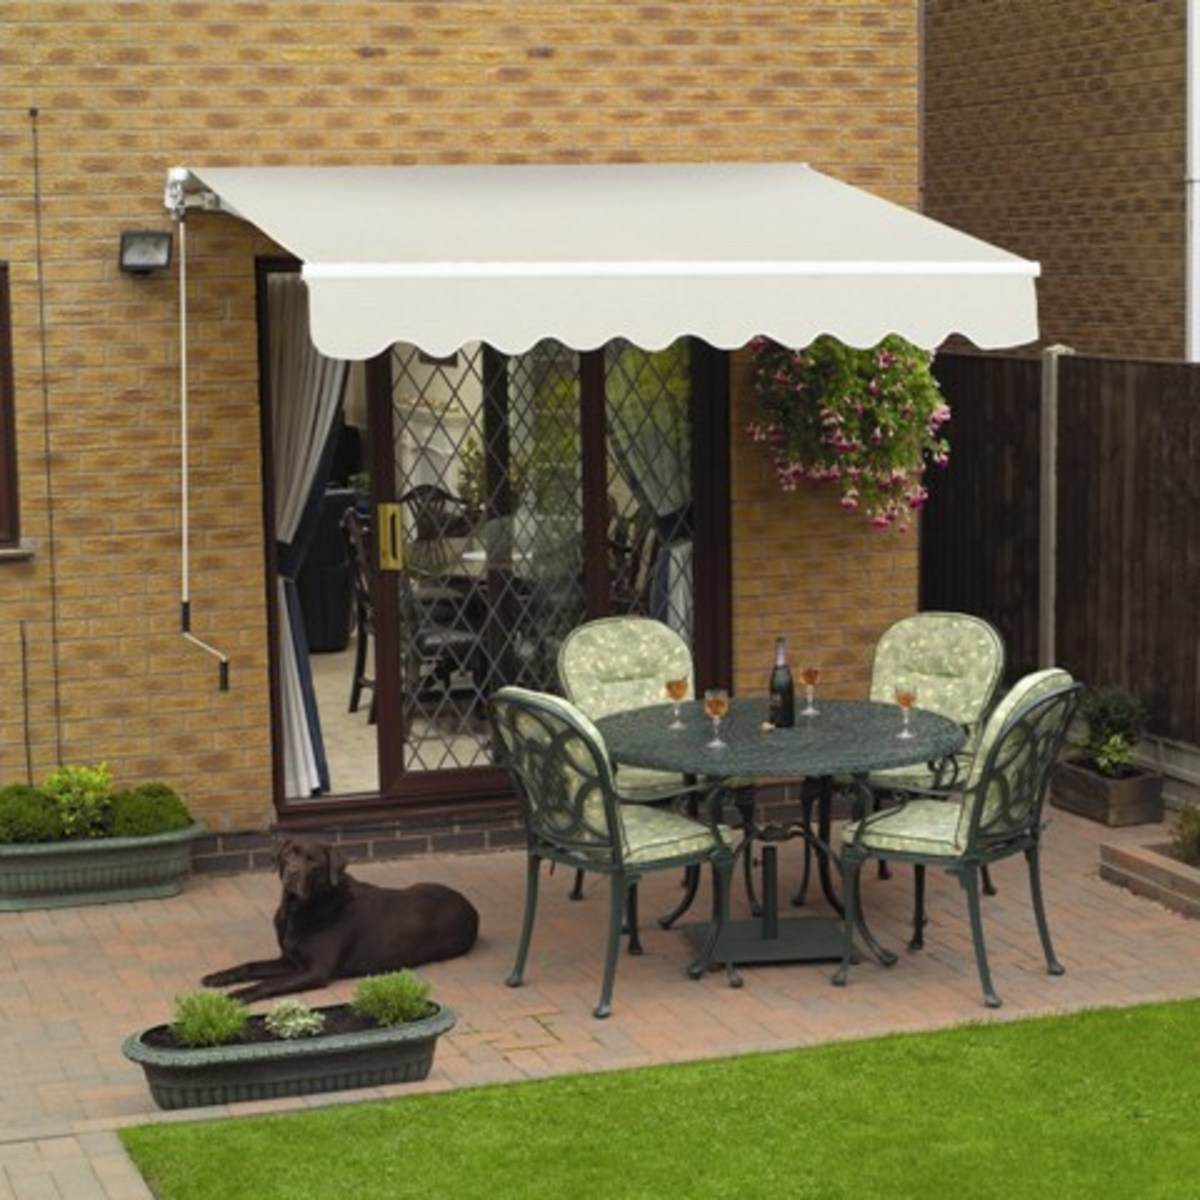 Patio Canopies Overheads And Roofs Hubpages